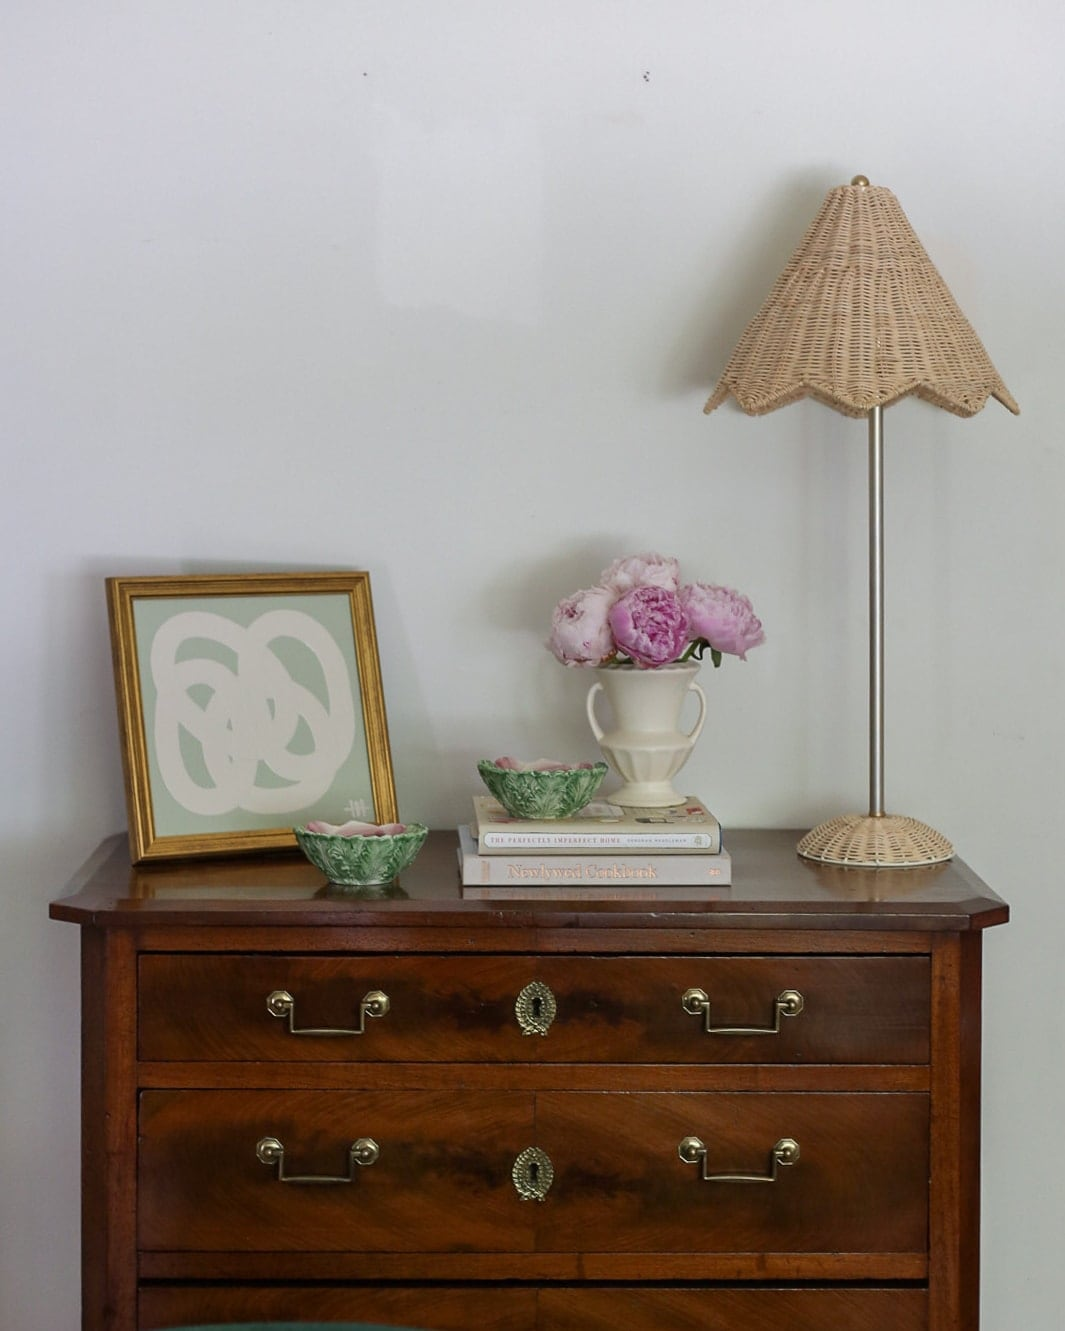 styled-chest-of-drawers